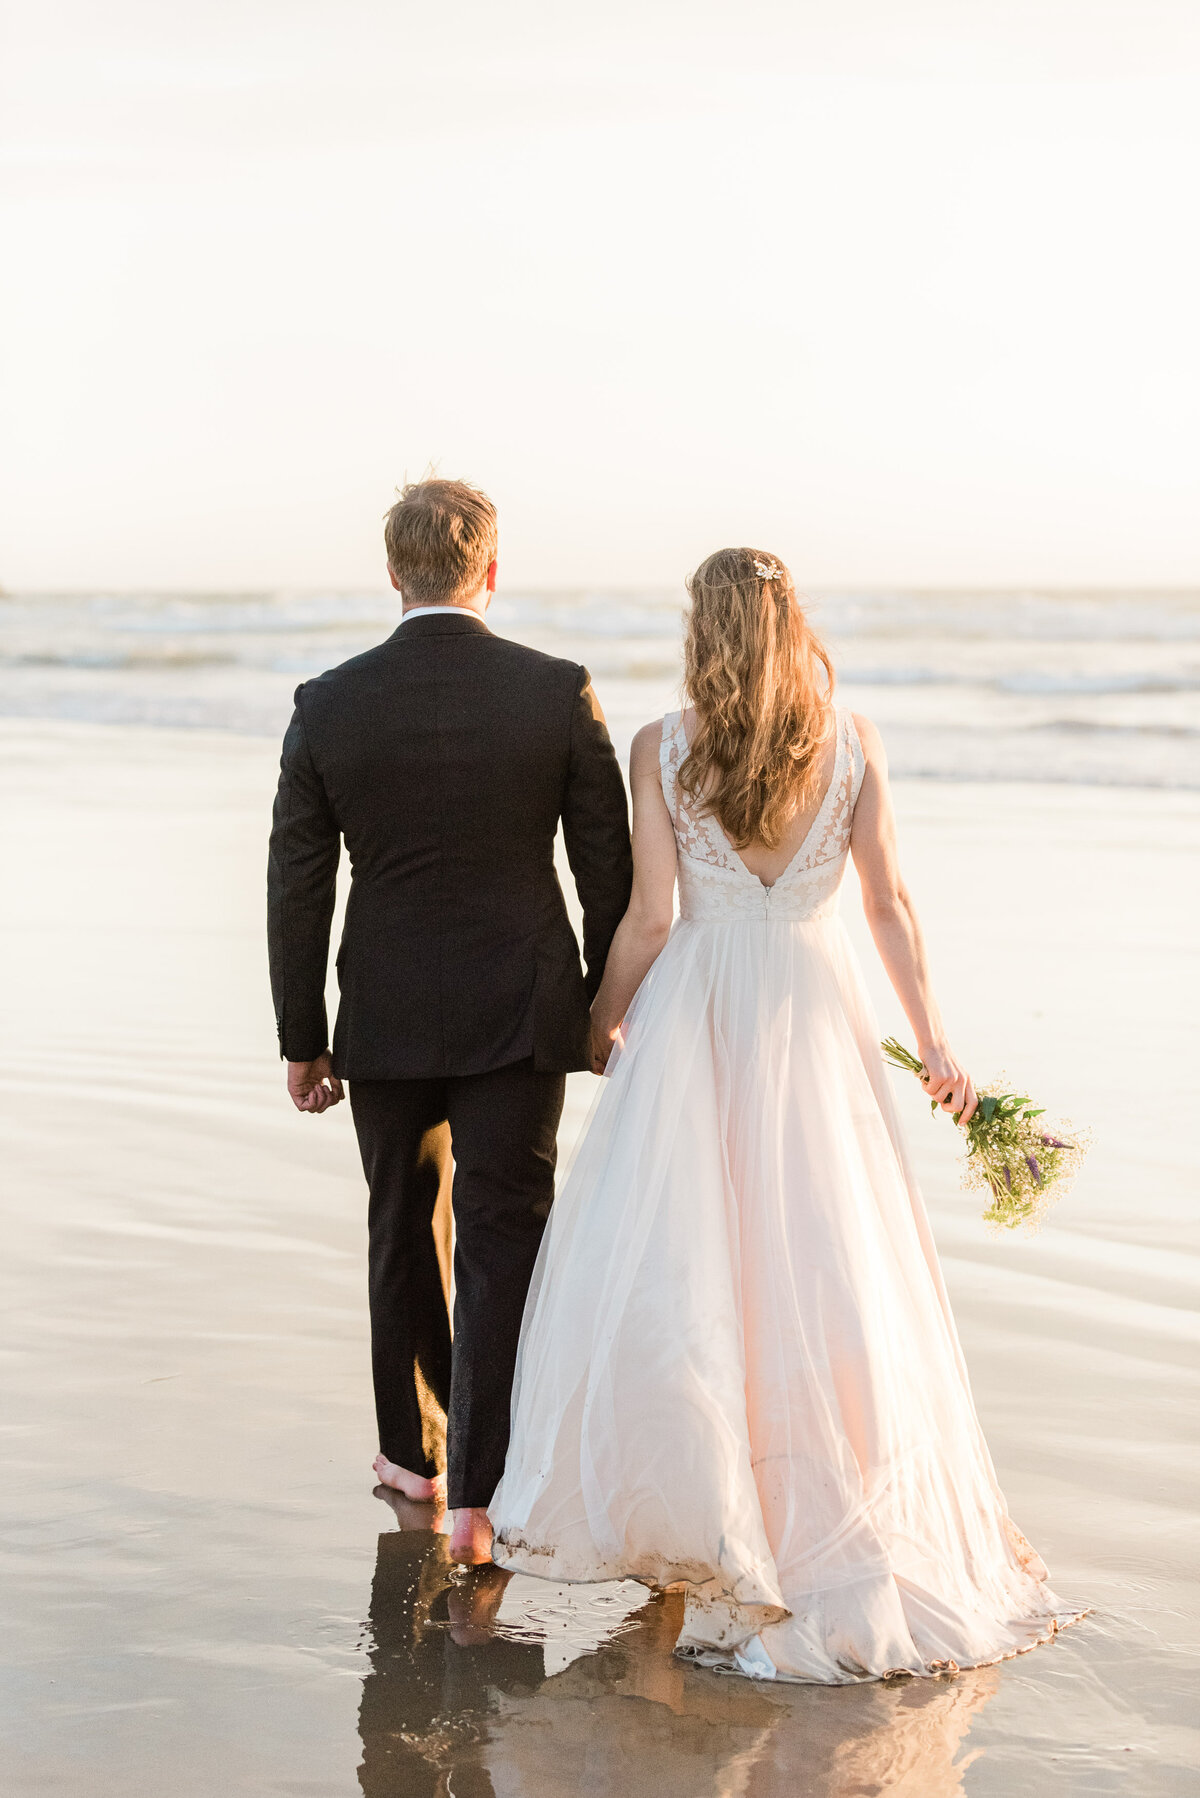 Cannon-Beach-Elopement-Photographer-59